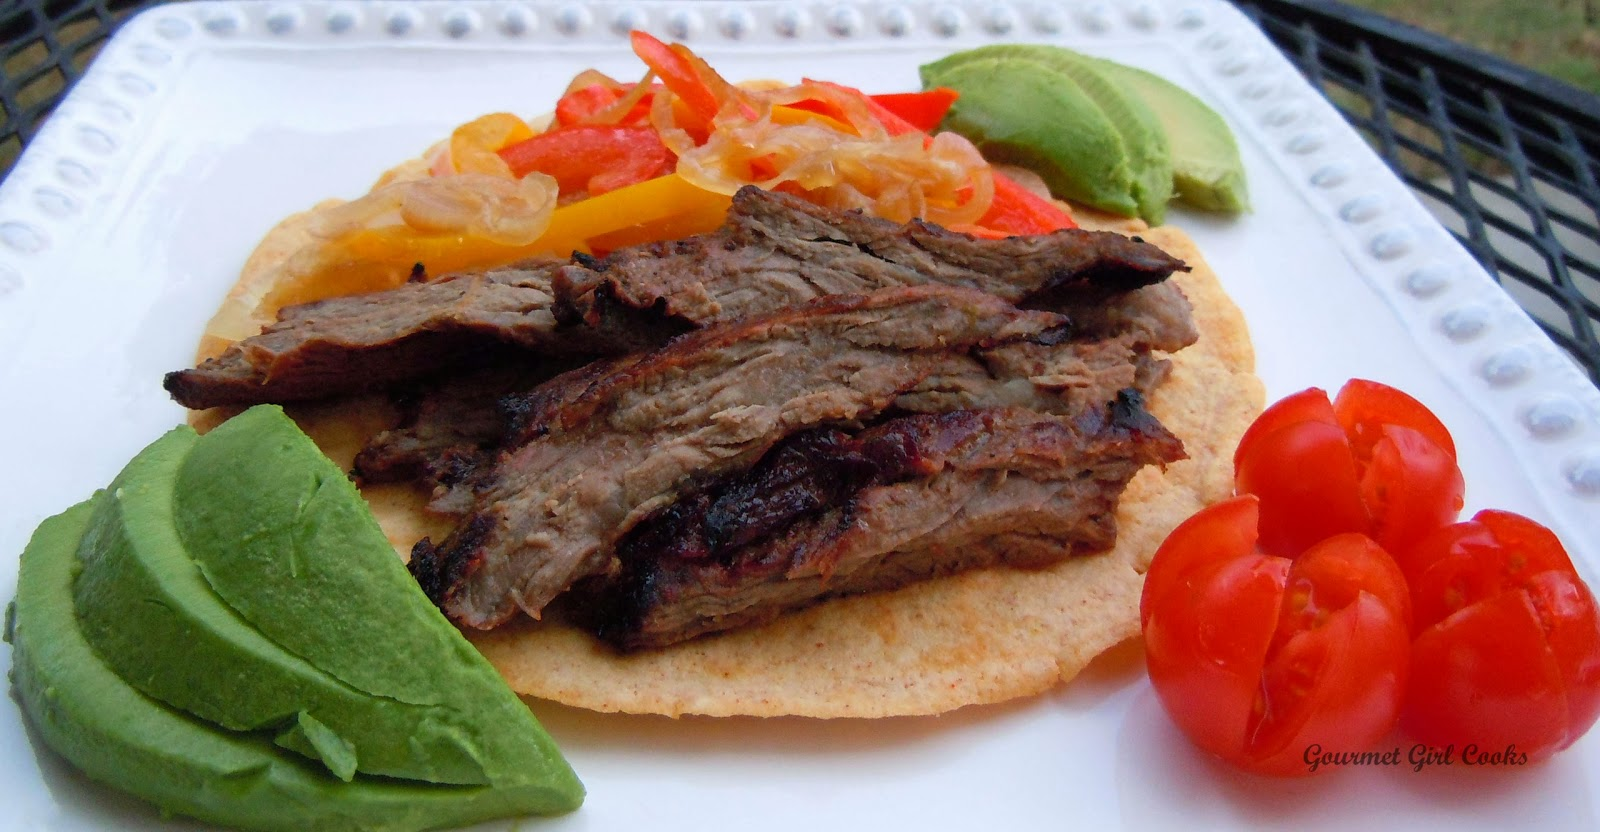 Gourmet Girl Cooks: Grilled Beef Fajitas w/ Chipotle Lime Marinade